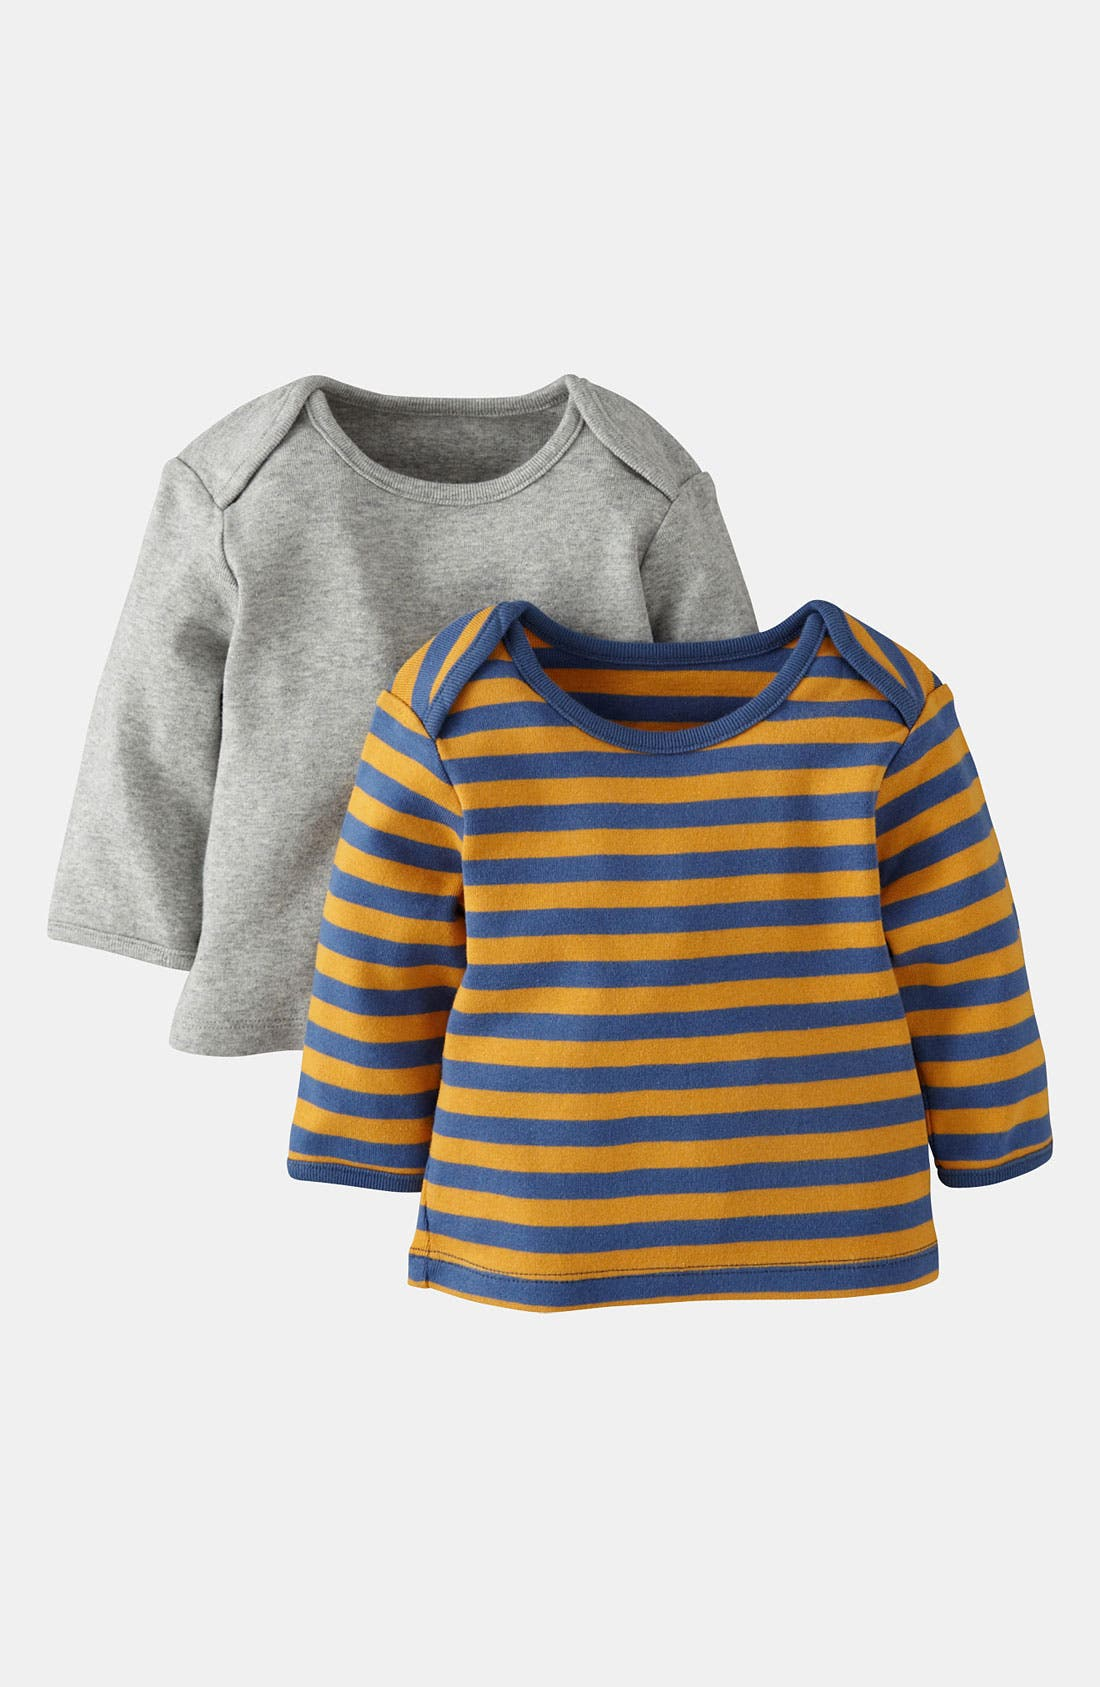 Alternate Image 1 Selected - Mini Boden Layering T-Shirt (2-Pack) (Baby)